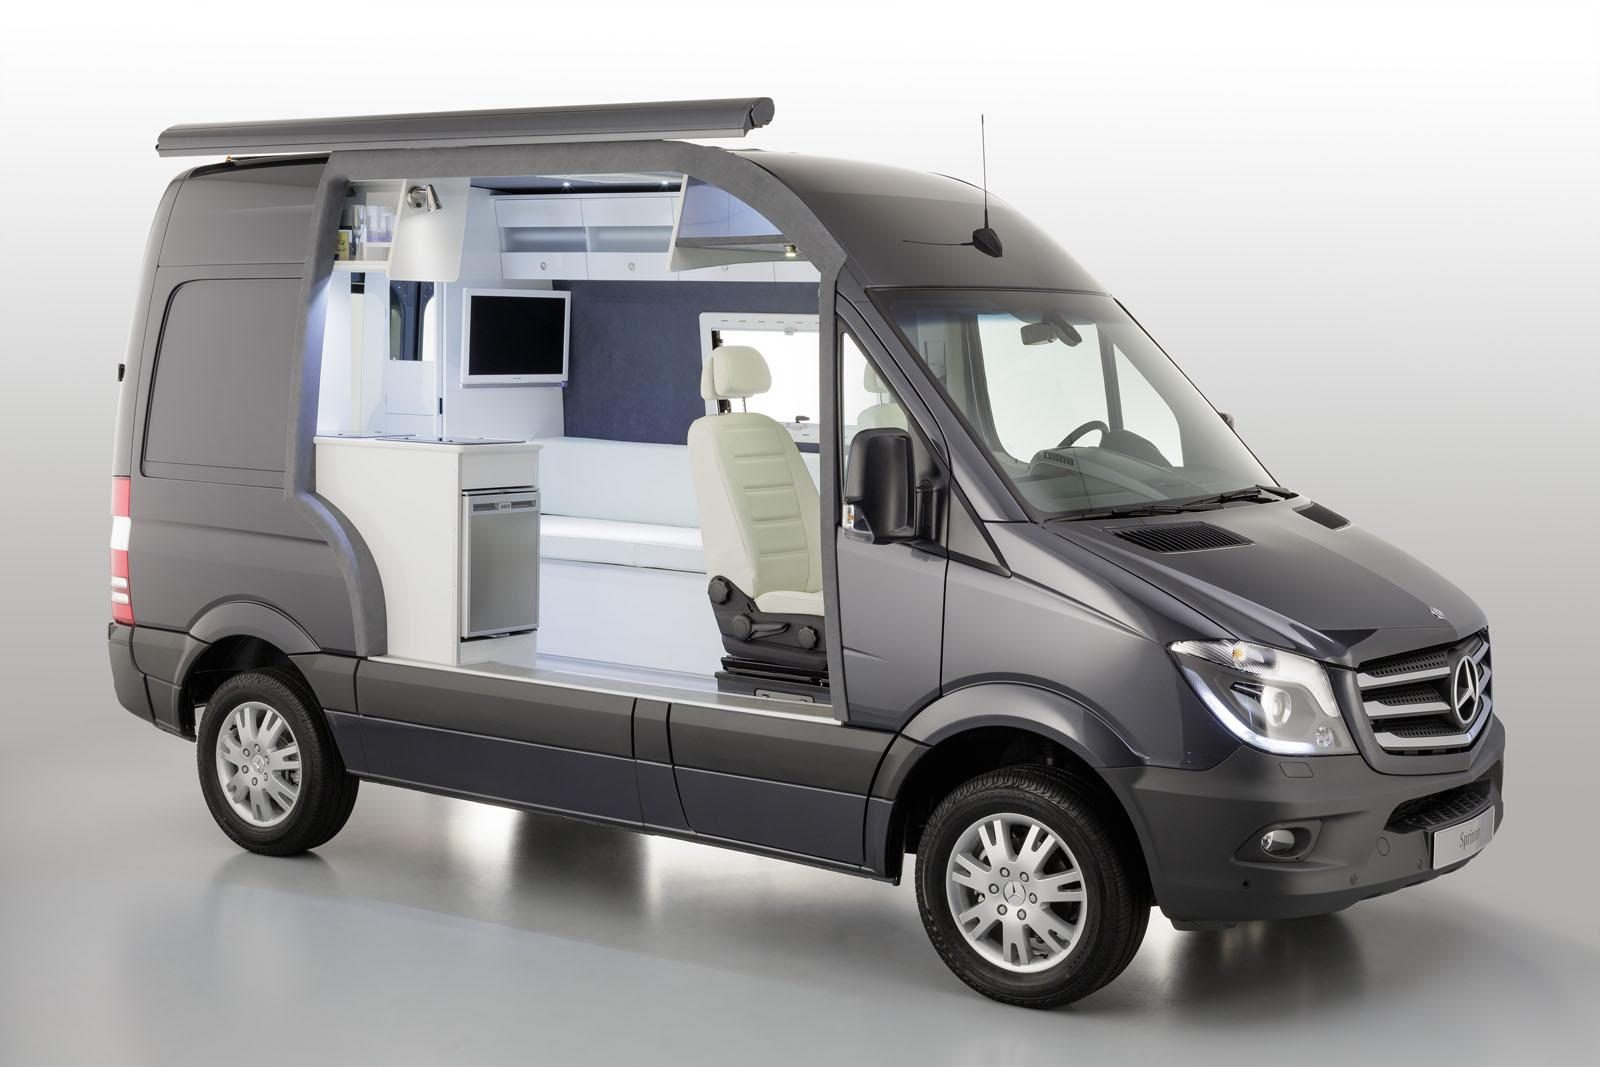 Mercedes Showcases Sprinter Caravan Cut-Away - autoevolution